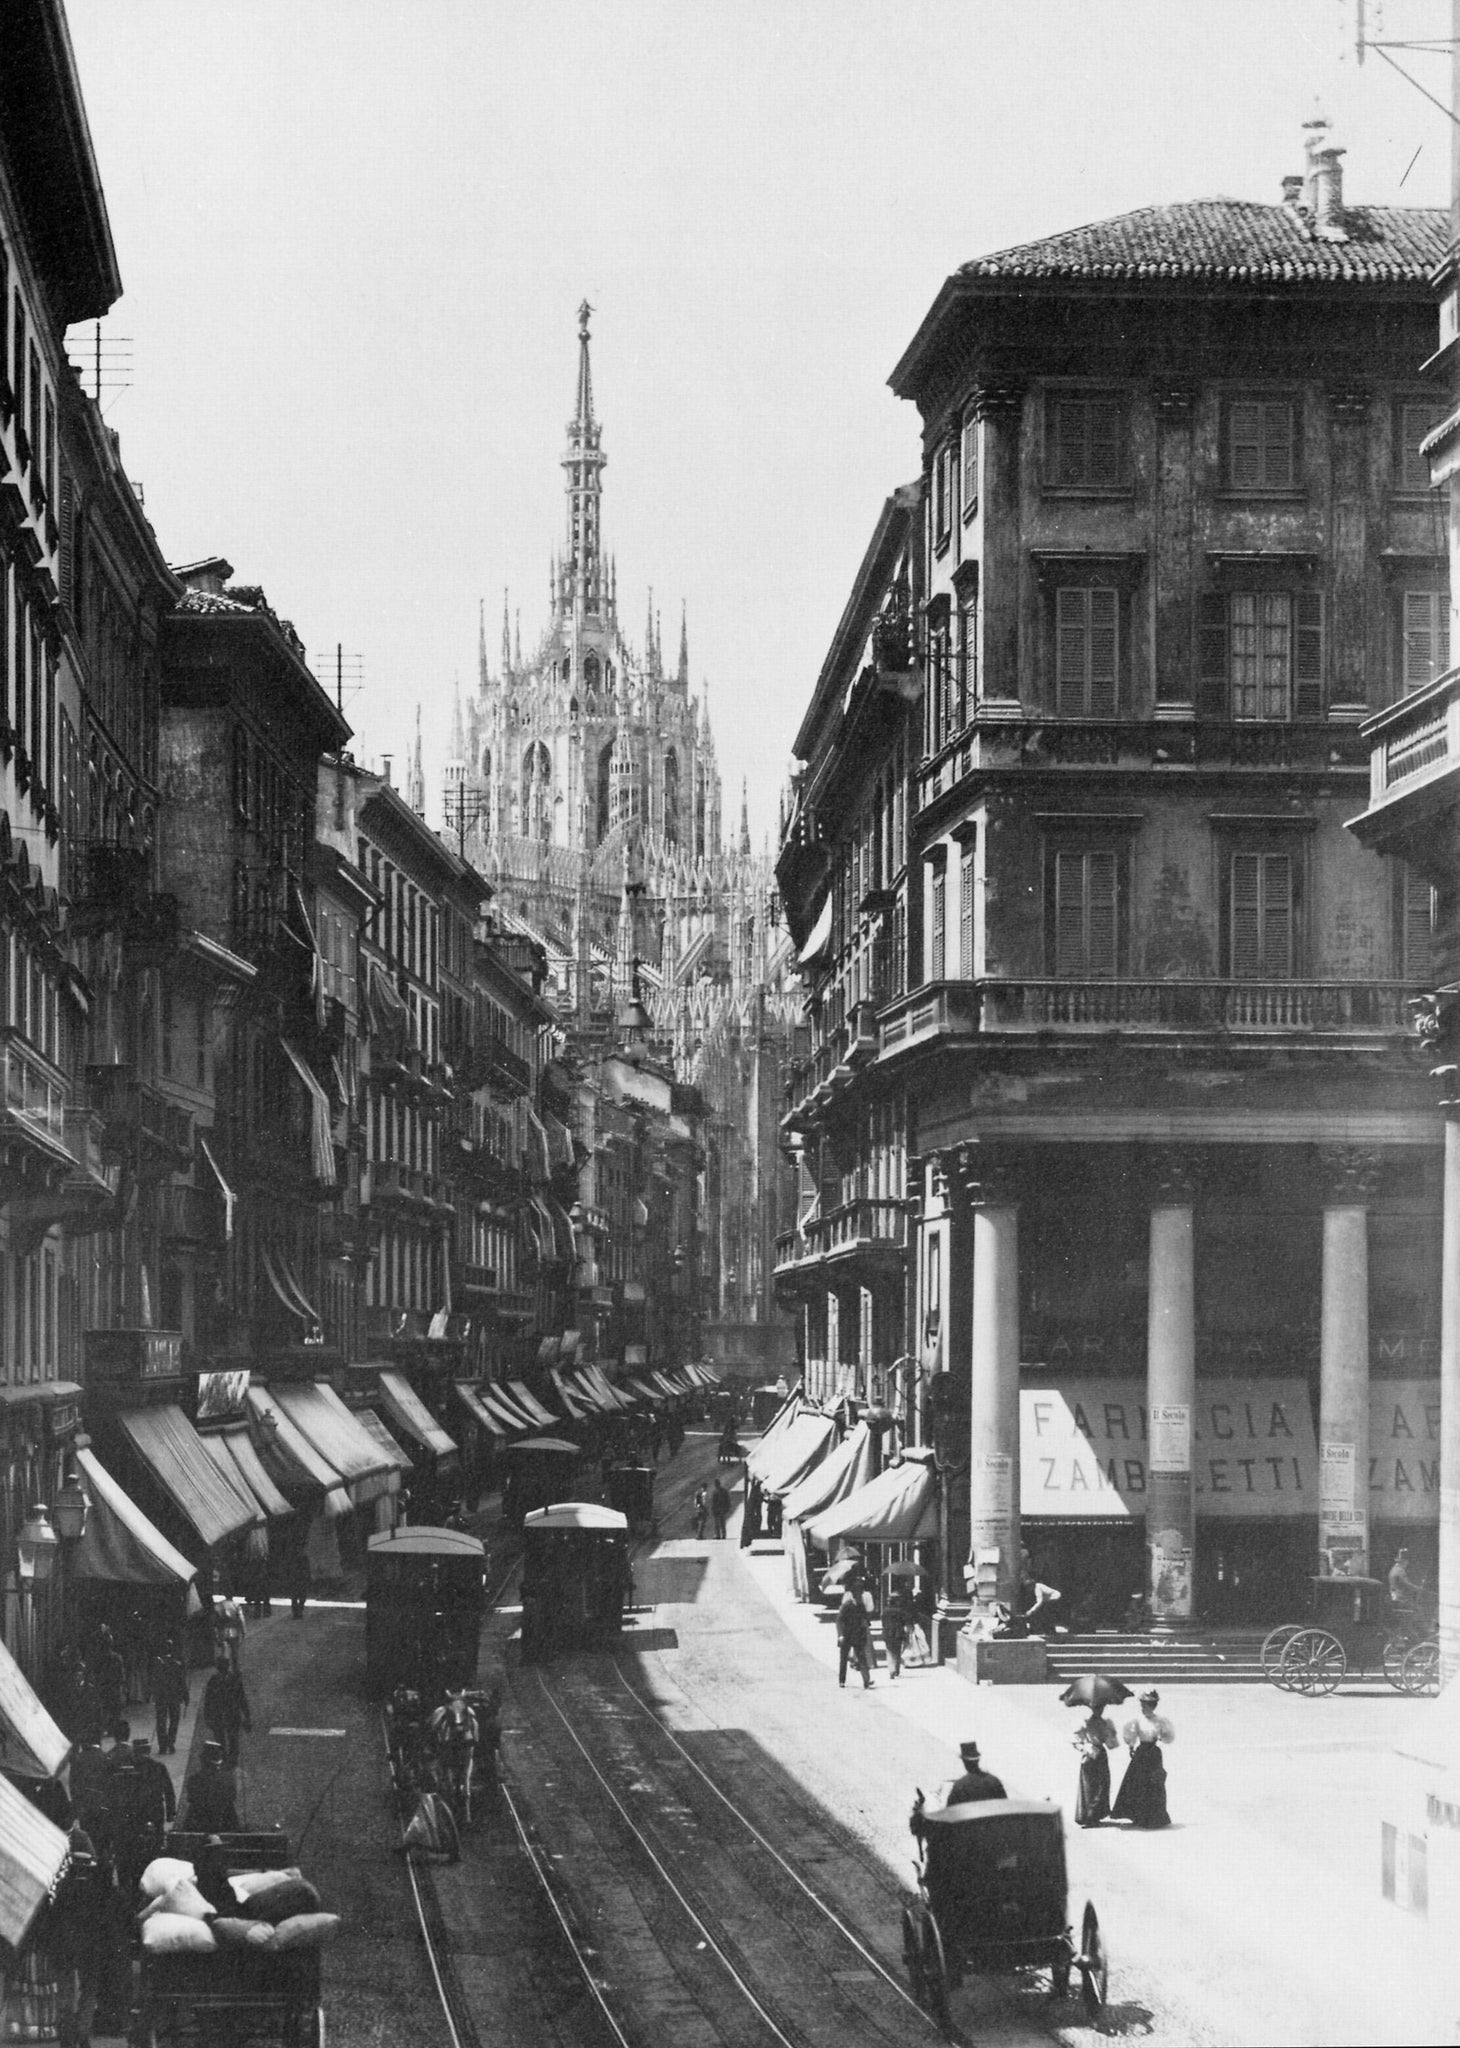 Corso Vittorio Emanuele II, captured in 1890 - just 6 years before Giuseppe Gobbi moved the business to this street in Milan